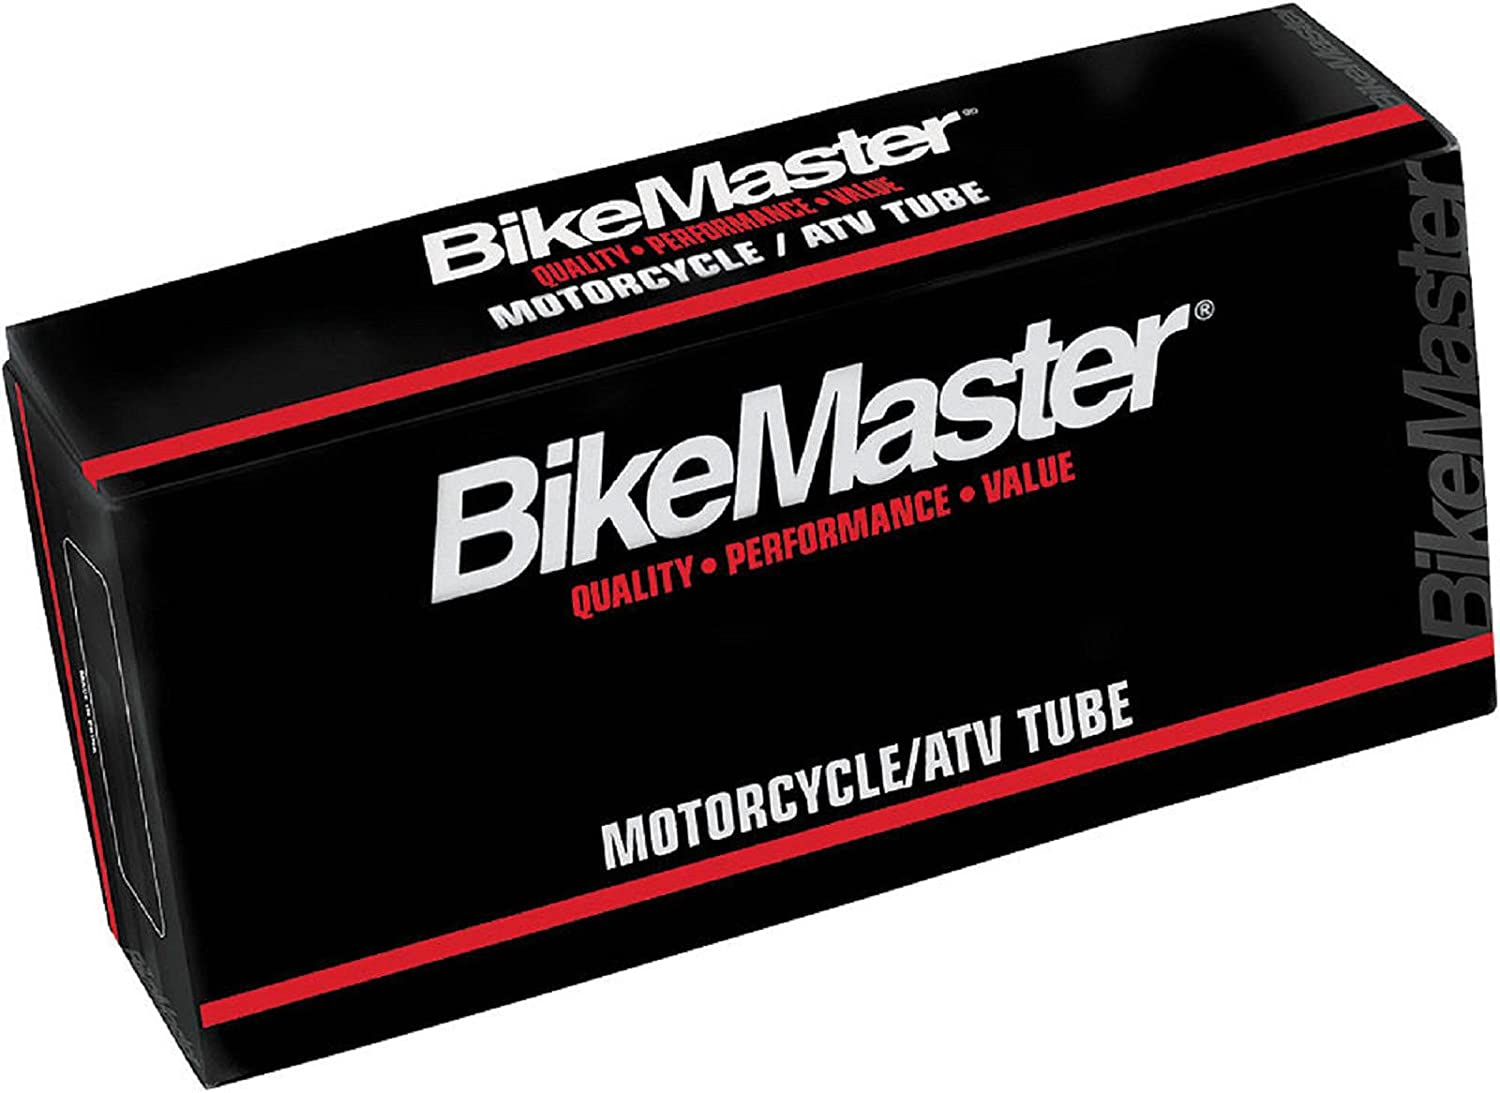 Bike Master Front 19 Inch Tire Tube and Free Sticker Fits Yamaha TTr125L 2002-2014 Big Wheel